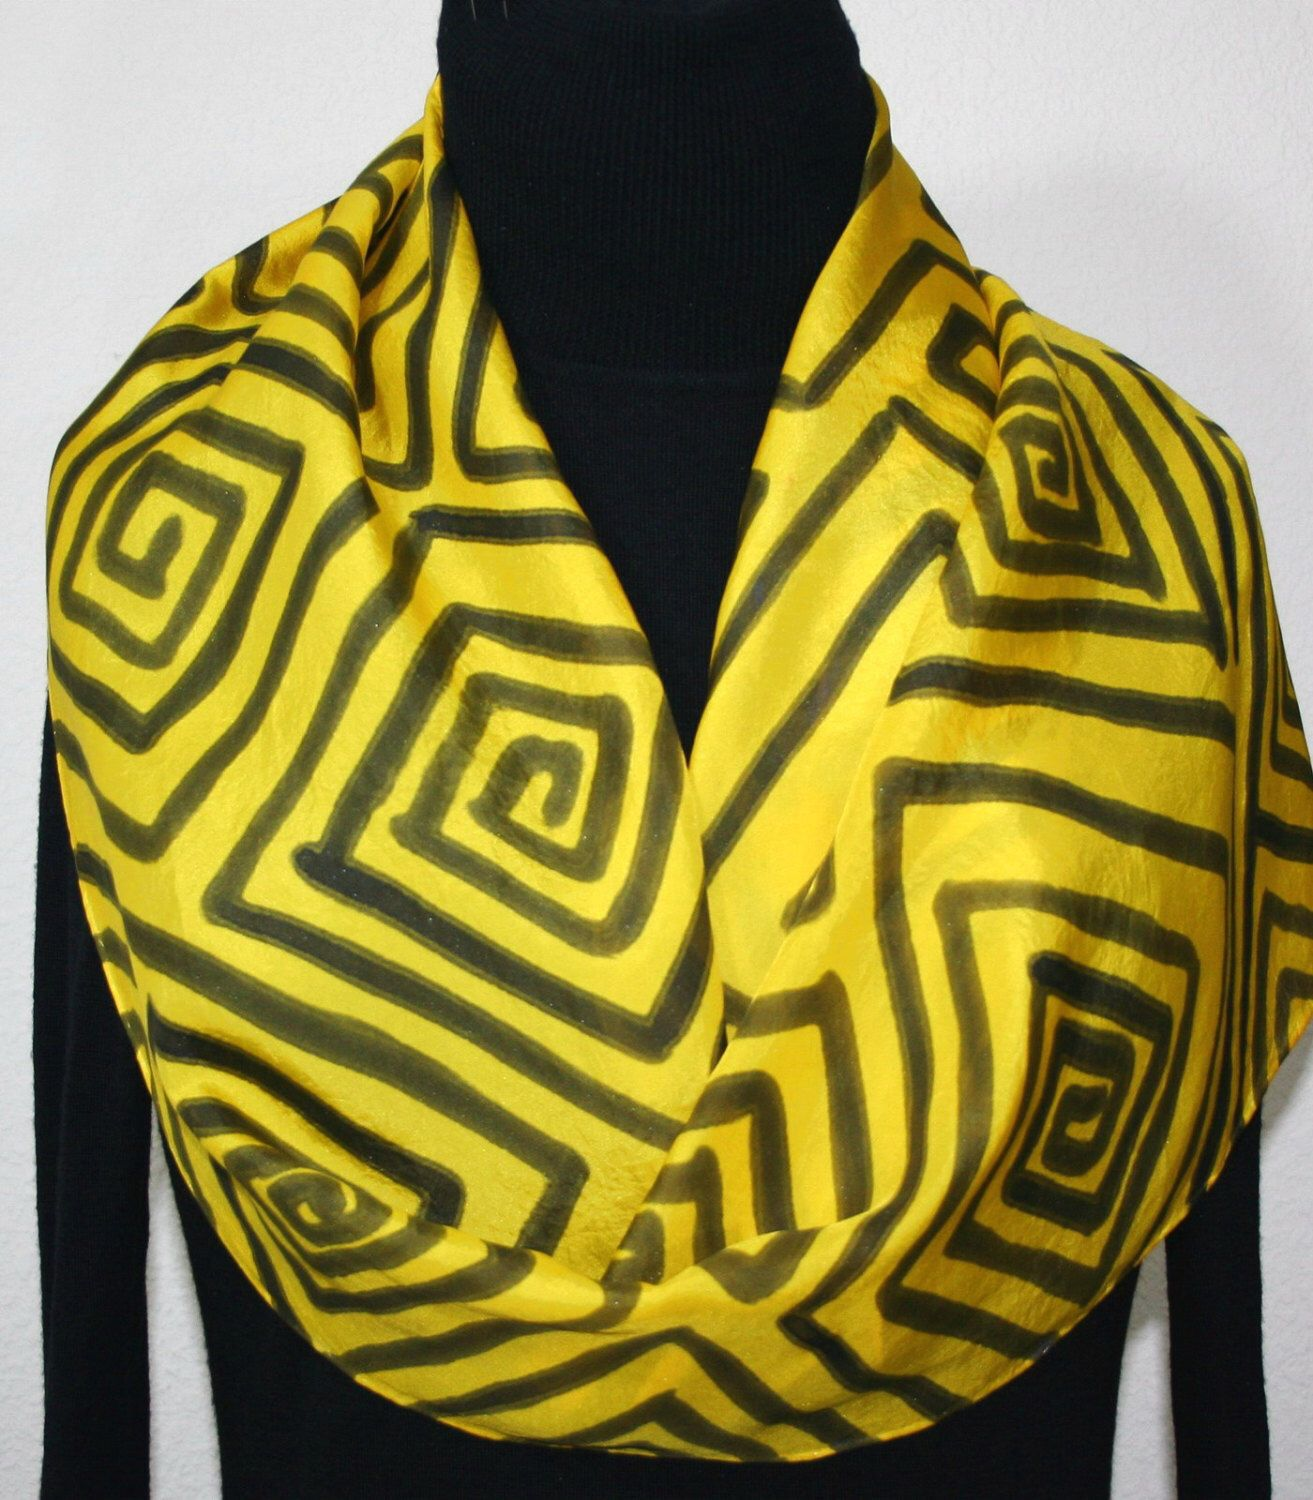 Silk Scarf Hand Painted Silk Scarf Yellow Black Silk Scarf Handmade Silk Scarf SUNRISE MAZE Size 11x60 Birthday Gift Scarf Gift-Wrapped by SilkScarvesColorado on Etsy https://www.etsy.com/listing/91379376/silk-scarf-hand-painted-silk-scarf